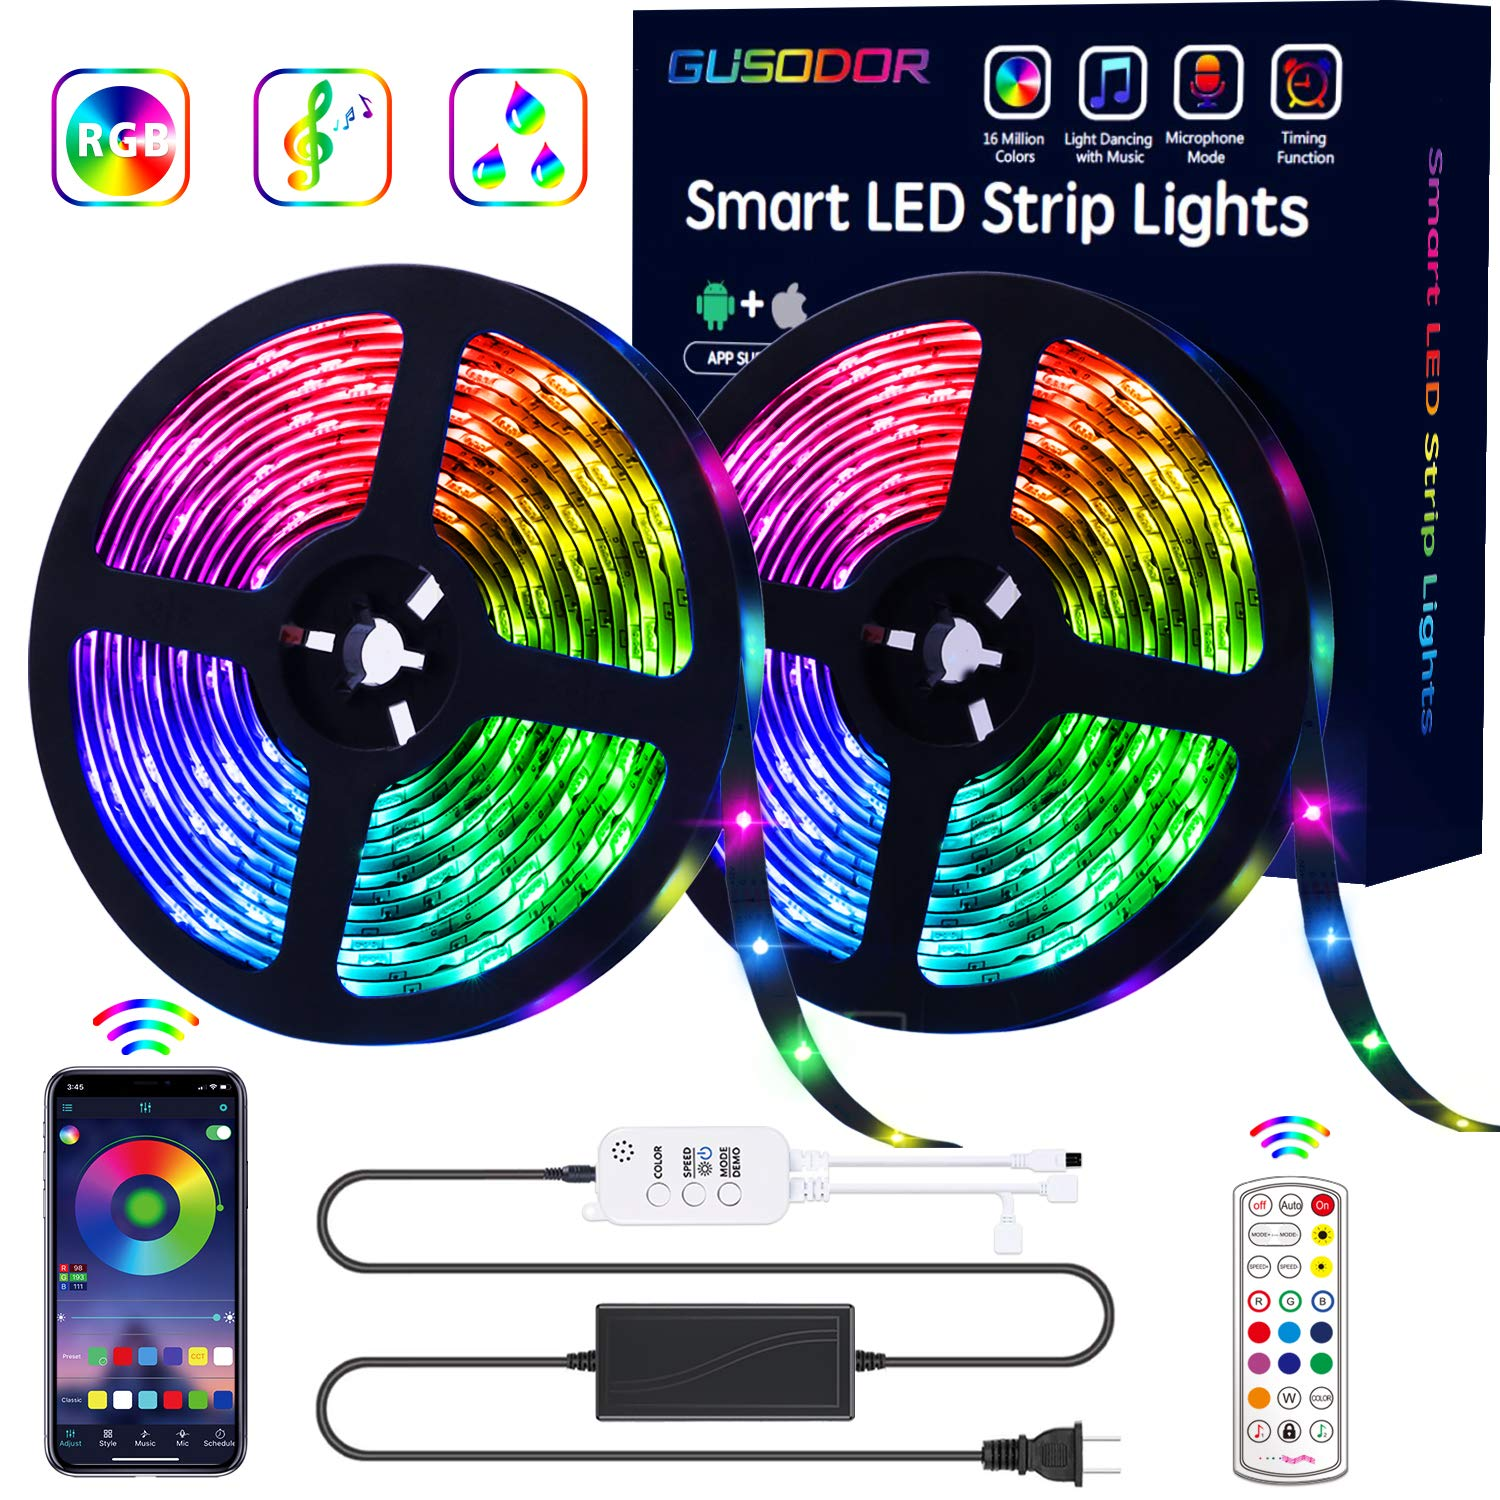 GUSODOR LED Strip Lights RGB Strips 32.8ft Waterproof Tape Light 300 LEDs SMD5050 Music Sync Color Changing +24Key…